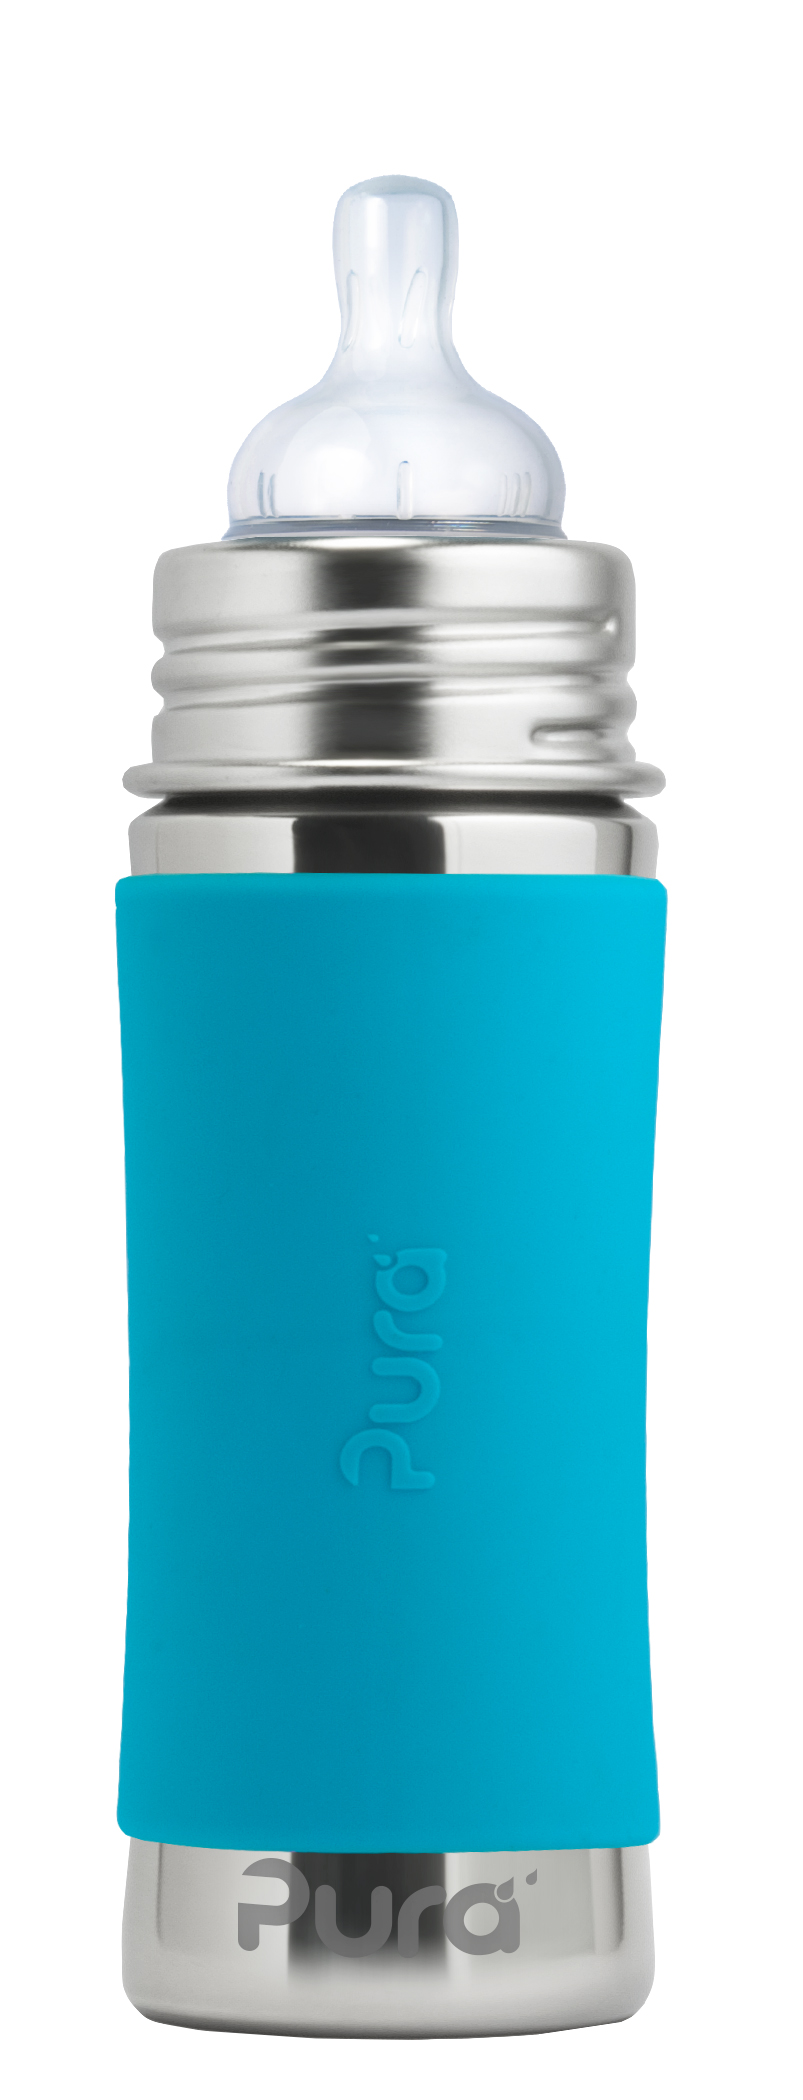 Pura Kiki 11 Oz   325 Ml Stainless Steel Infant Bottle With Silicone Medium-flow Nipple & Sleeve, Aqua... by Pura Stainless